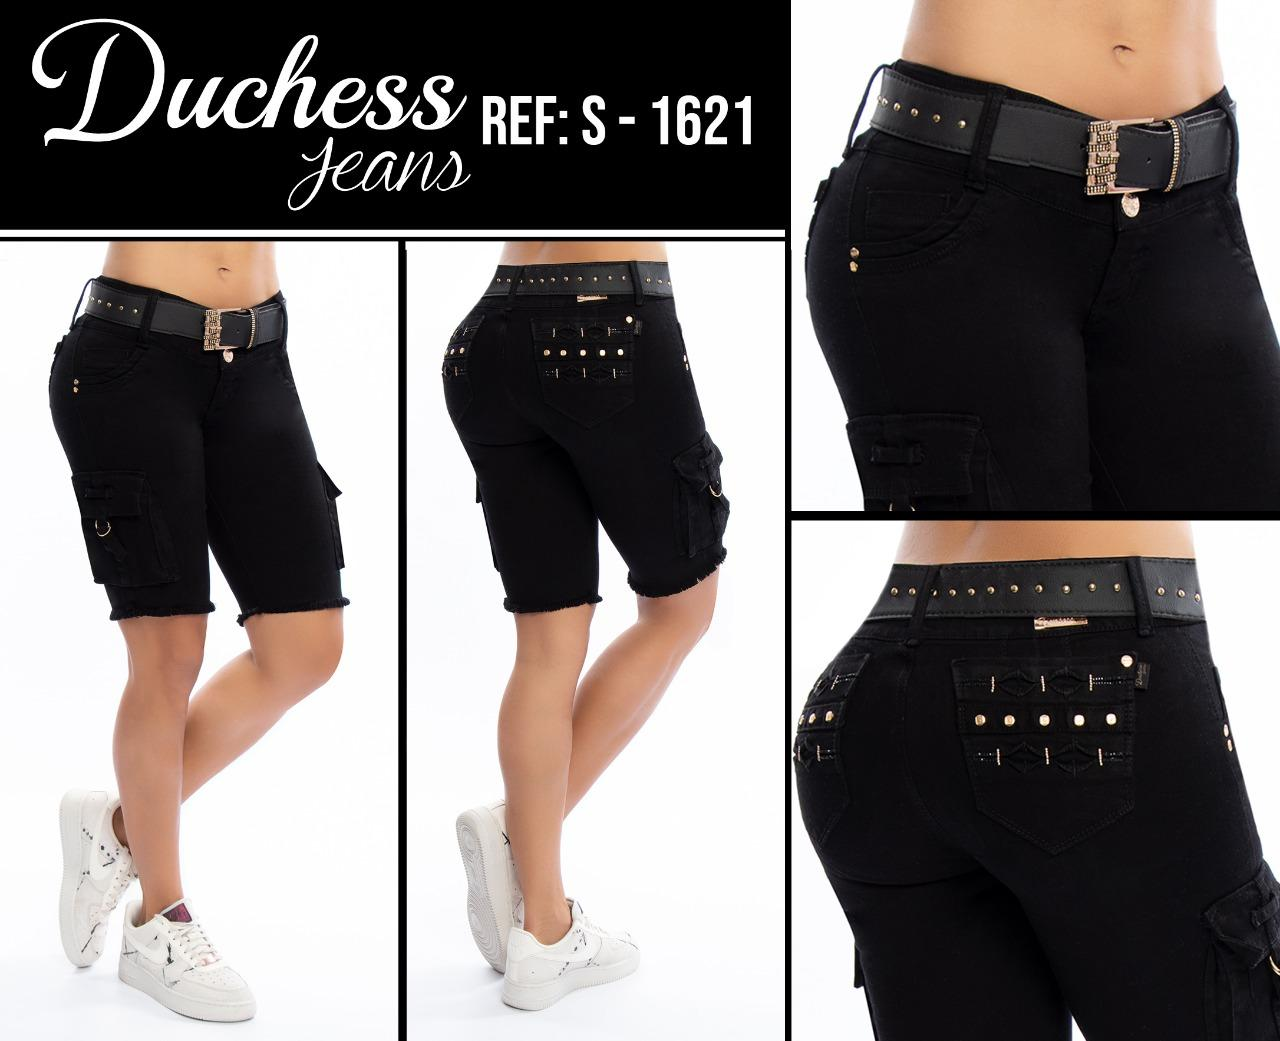 Jean Capri Levanta Colombian Tail Fashion Brand Duchess Color Black